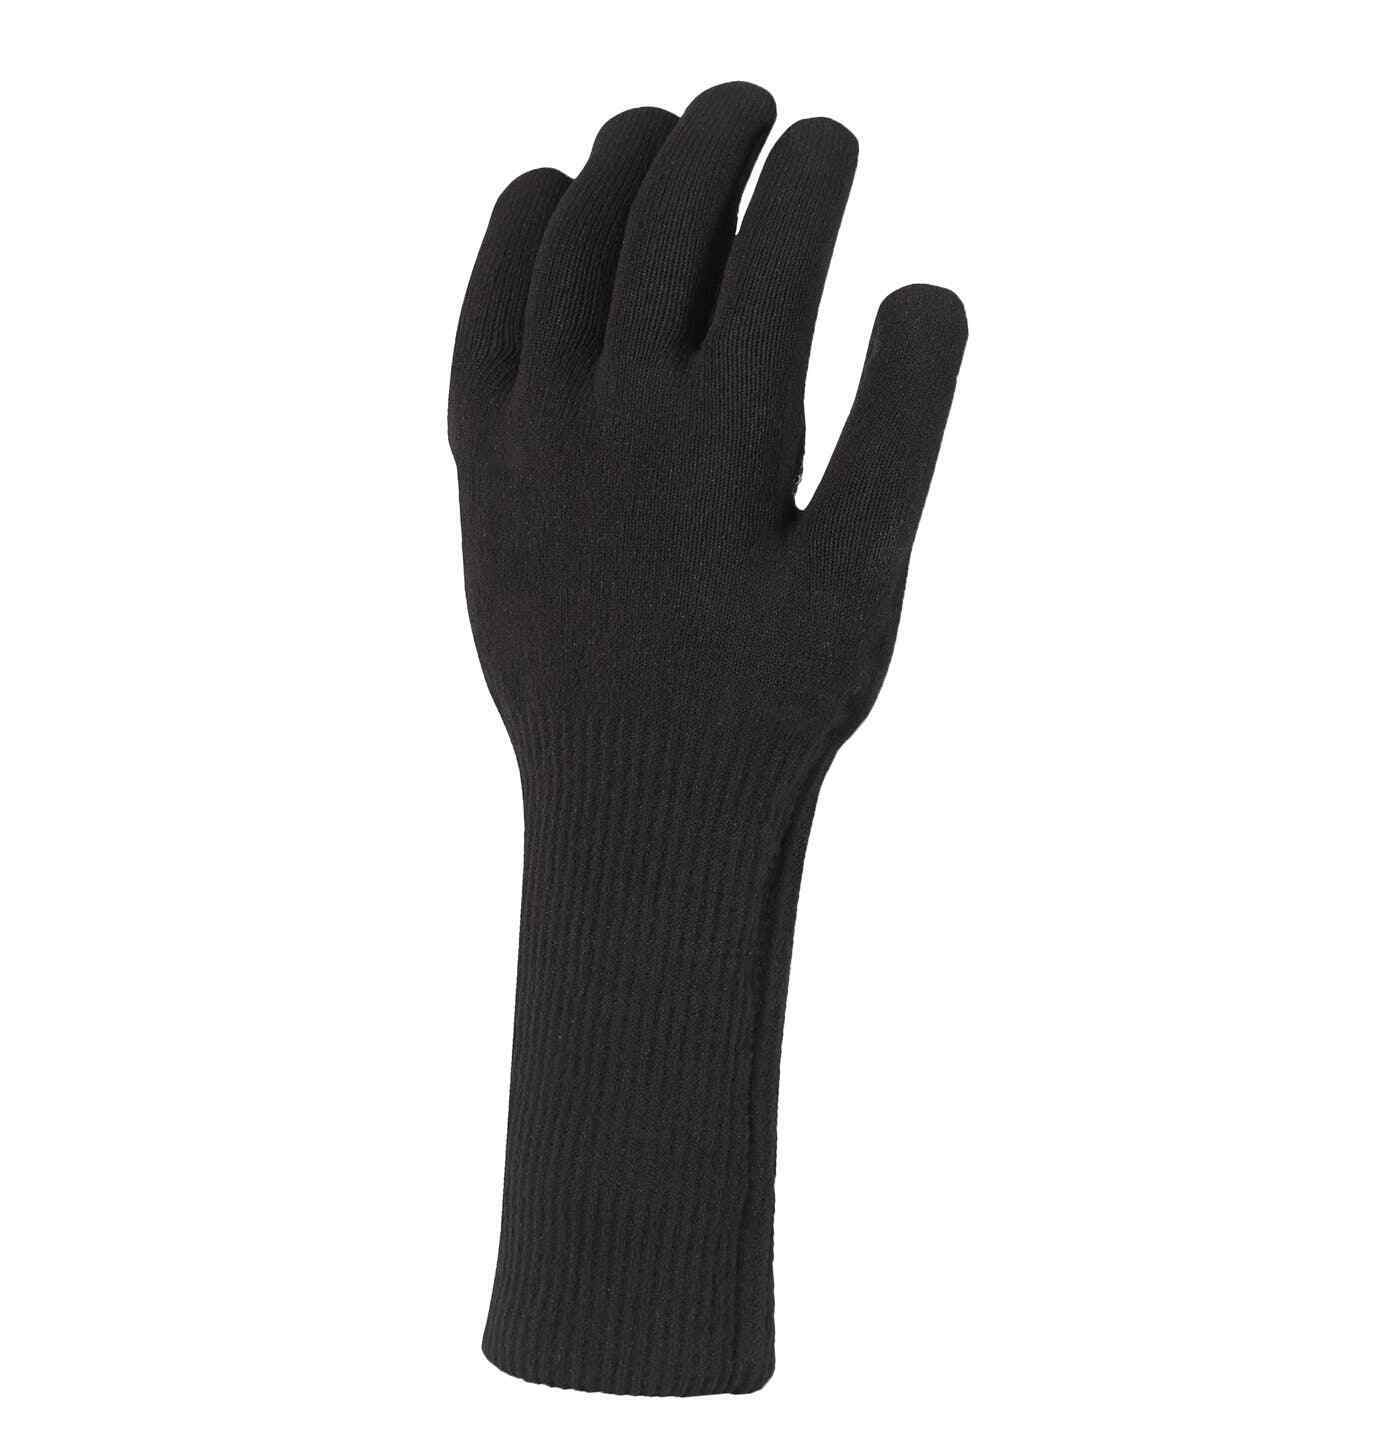 SealSkinz Waterproof All Weather Ultra Grip  Knitted Gauntlet G s  quality assurance